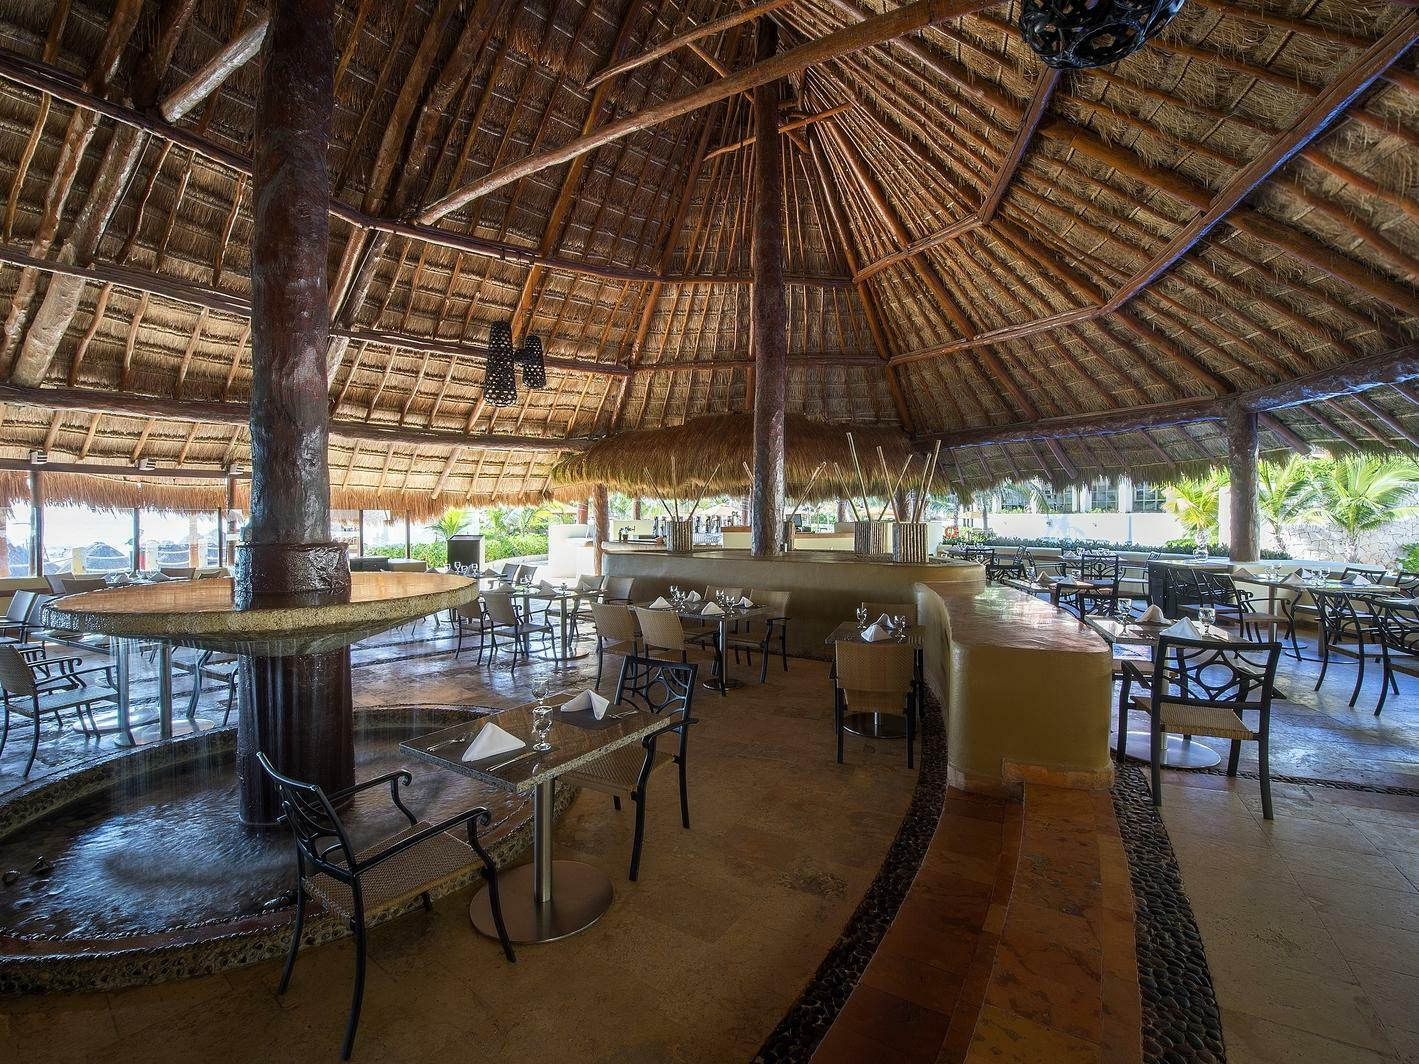 outdoor dining restaurant with canopy roof